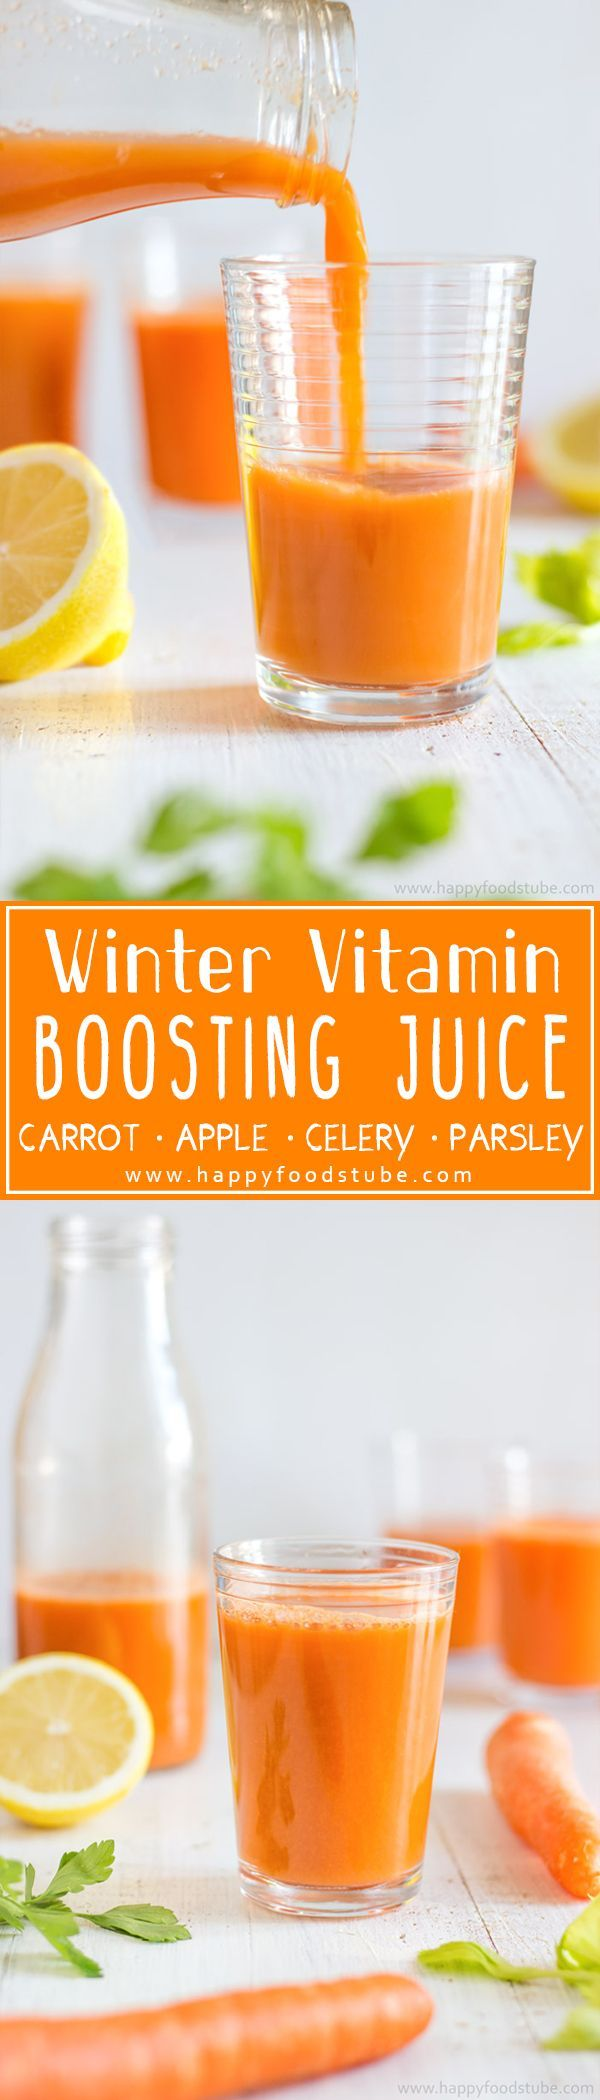 Winter Vitamin Boosting Juice will help you stay healthy throughout cold season! It's homemade, rich in Vitamin C & ready in 5 minutes! Only 5 ingredients - carrot, apple, celery and parsley   http://happyfoodstube.com